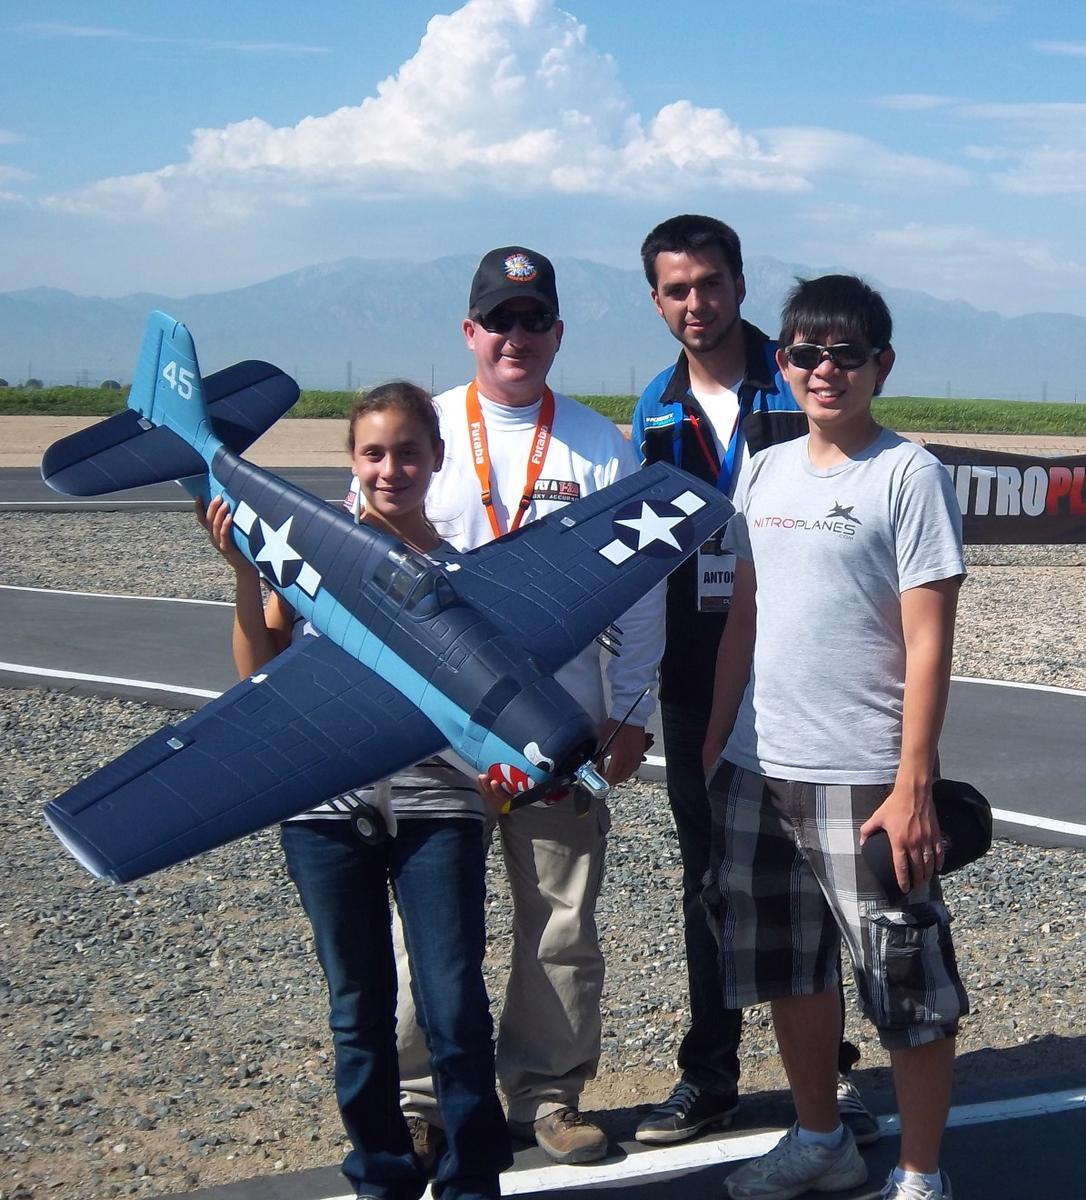 Name: Nitroplanes.jpg Views: 596 Size: 199.4 KB Description: Evelyn and I with Antonio and Tony from Nitroplanes. These guys are the best! They made us feel like part of the Nitroplanes family.